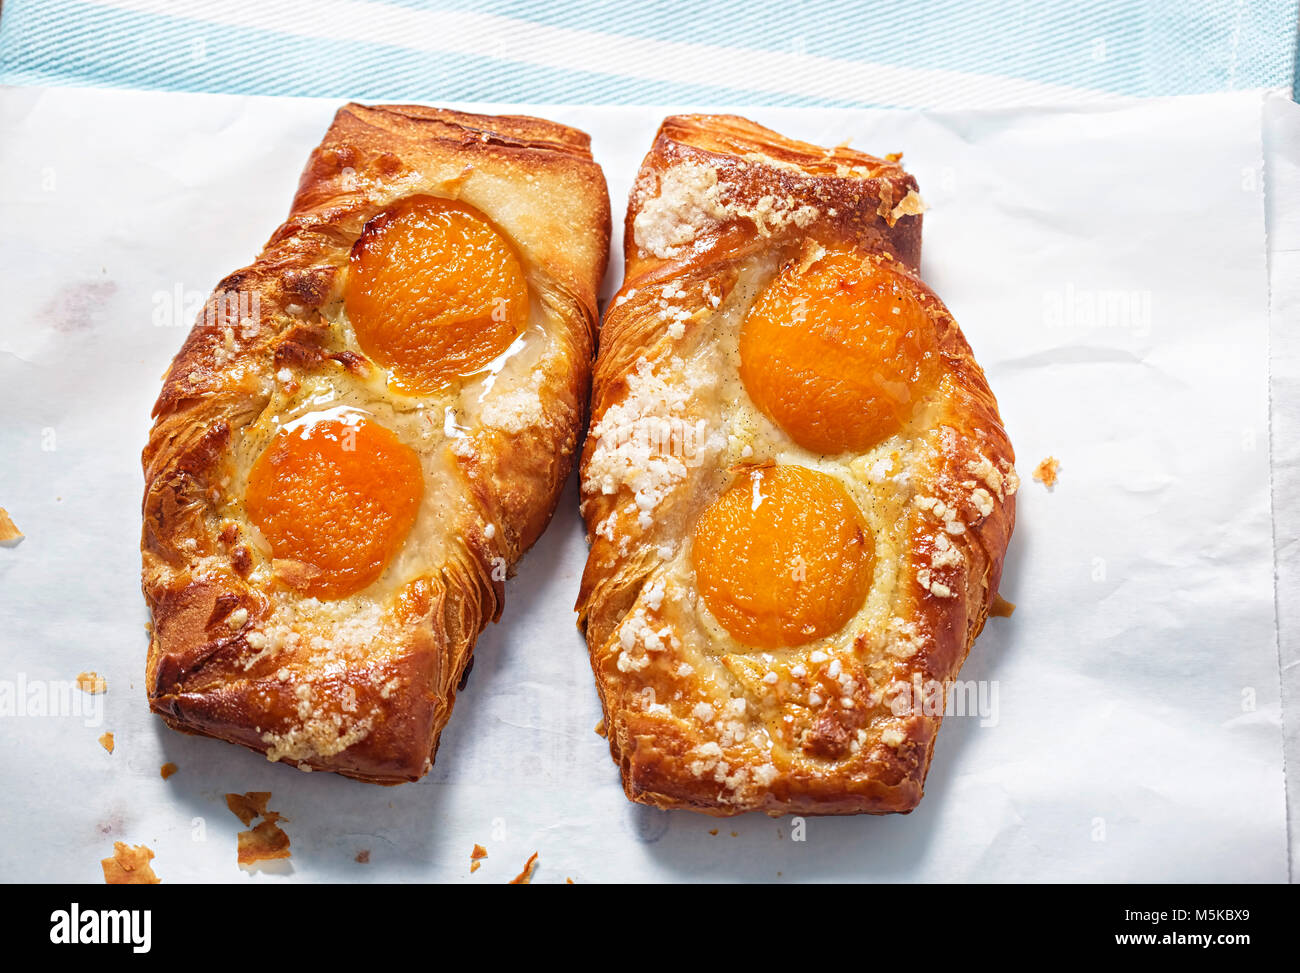 Apricot french pastry - Stock Image